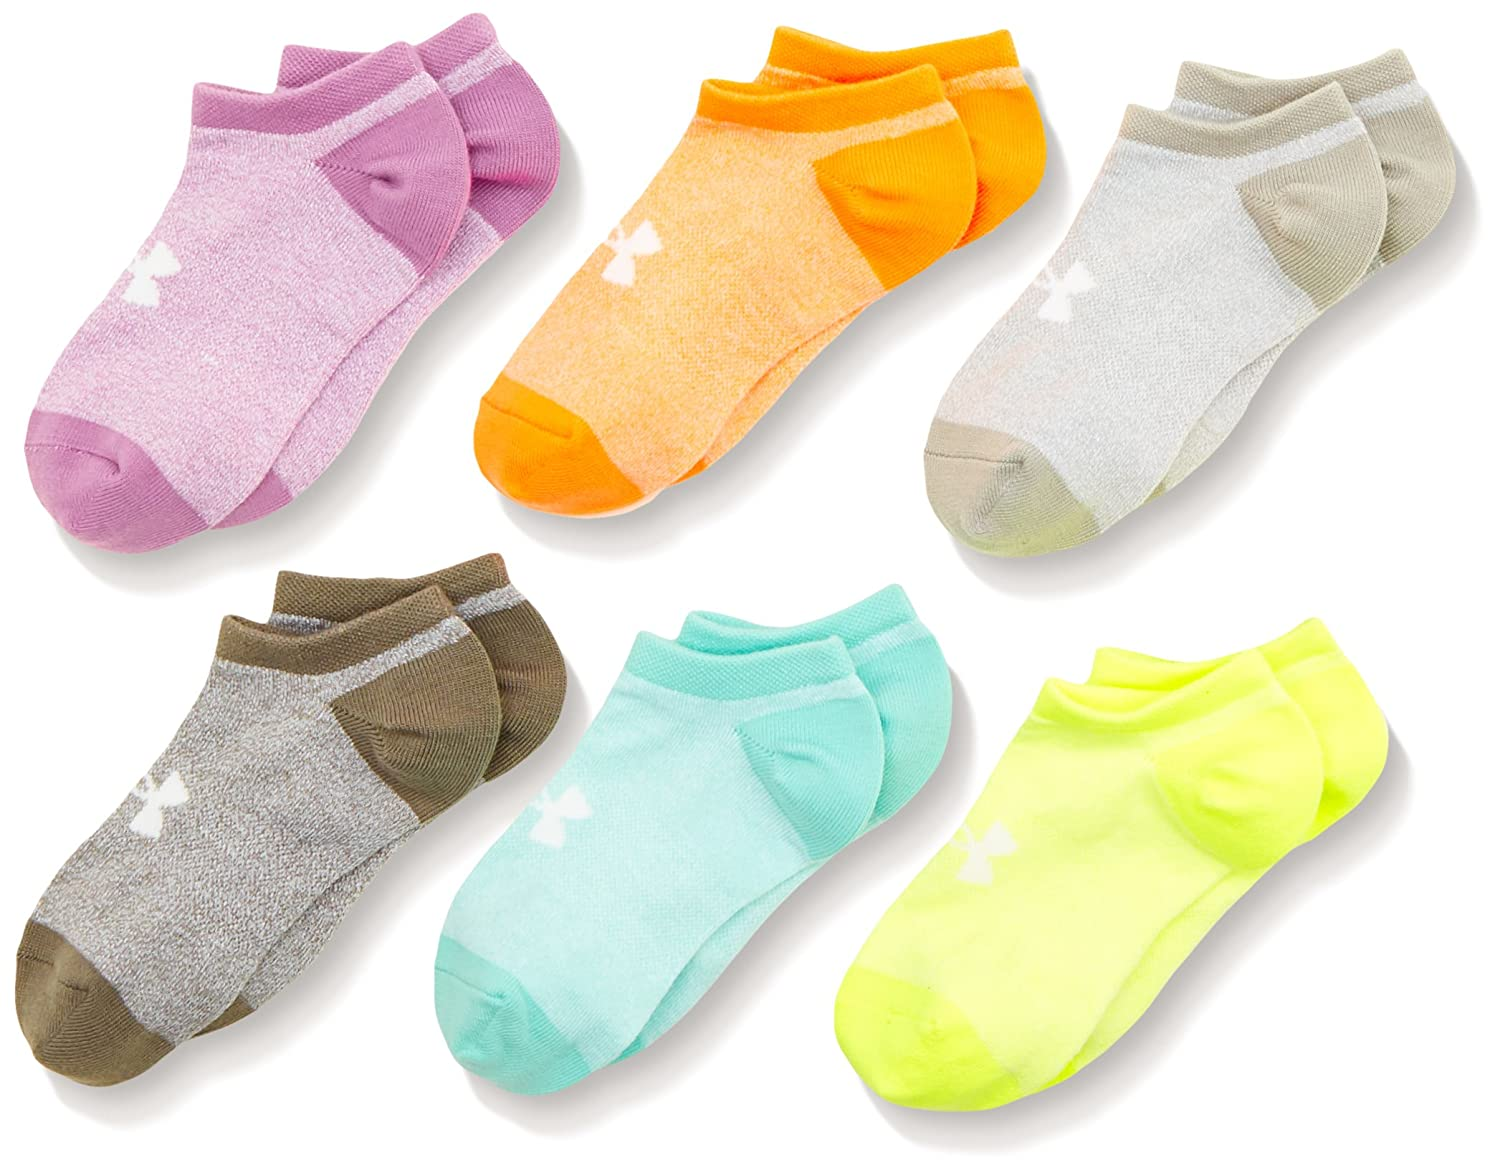 Under Armour Girls' Solid Noshow Socks (Pack of 6) Assorted Large 1312604-970